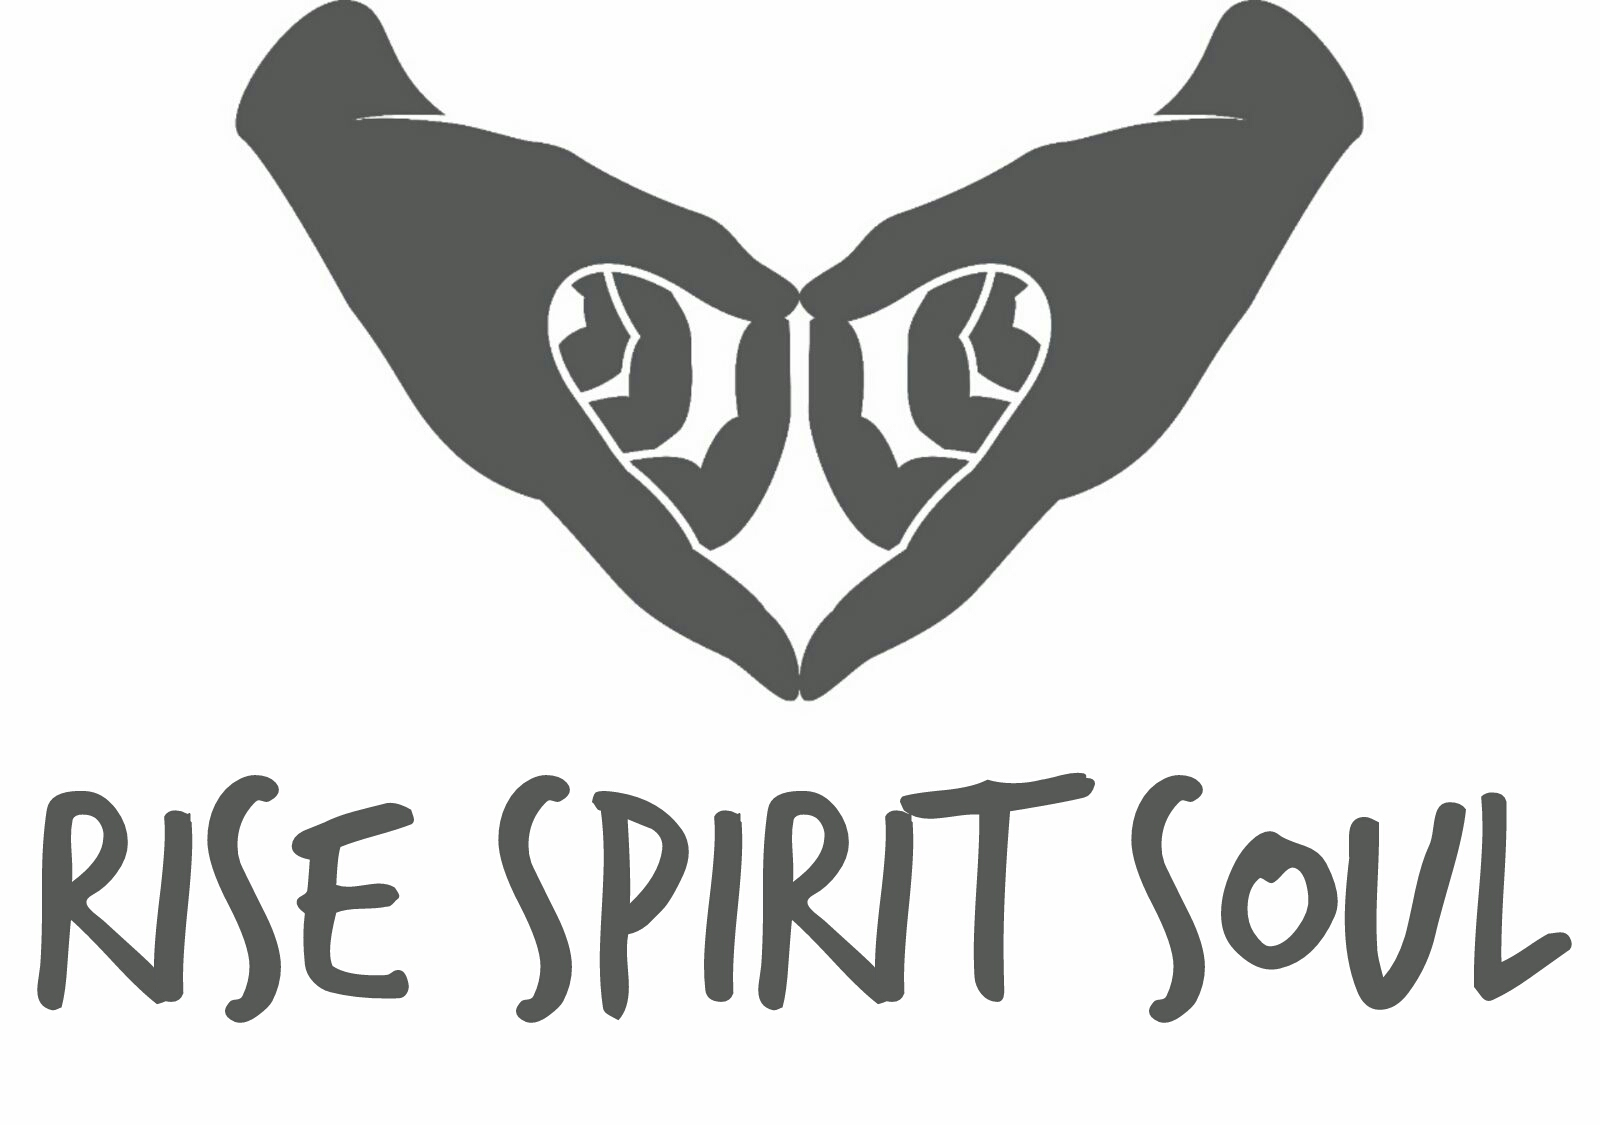 Risespiritsoul Meditation Teacher Training